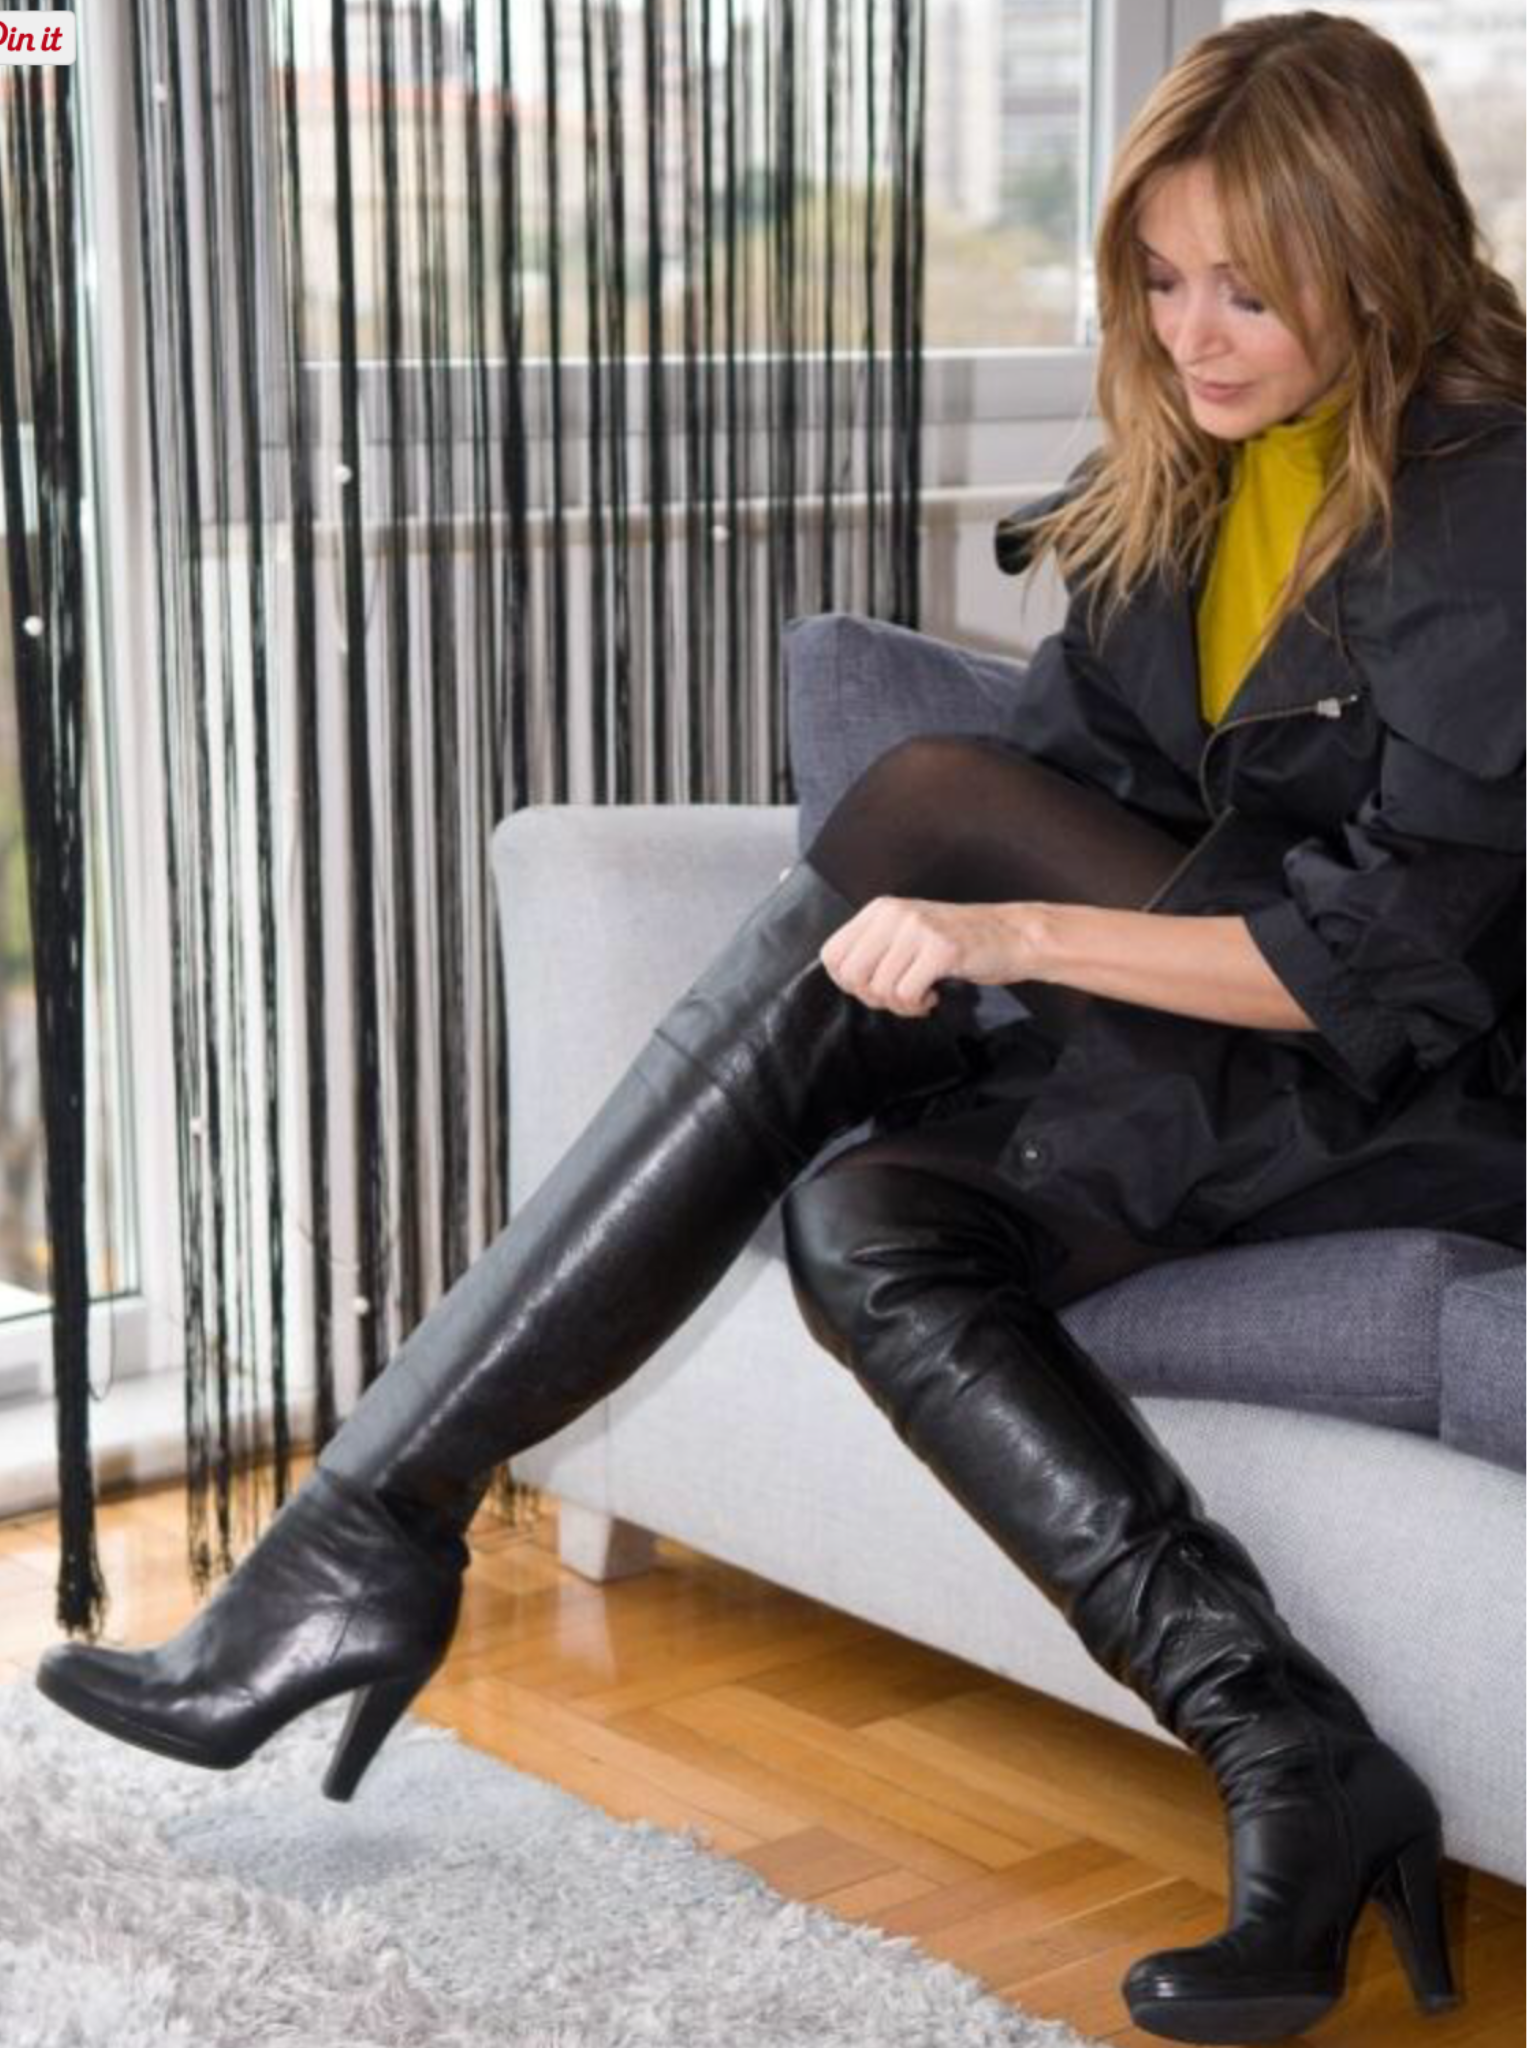 2bfa31b525a01 highheelbootsthigh | Ladies in boots | Kniehohe stiefel, Hochhackige ...